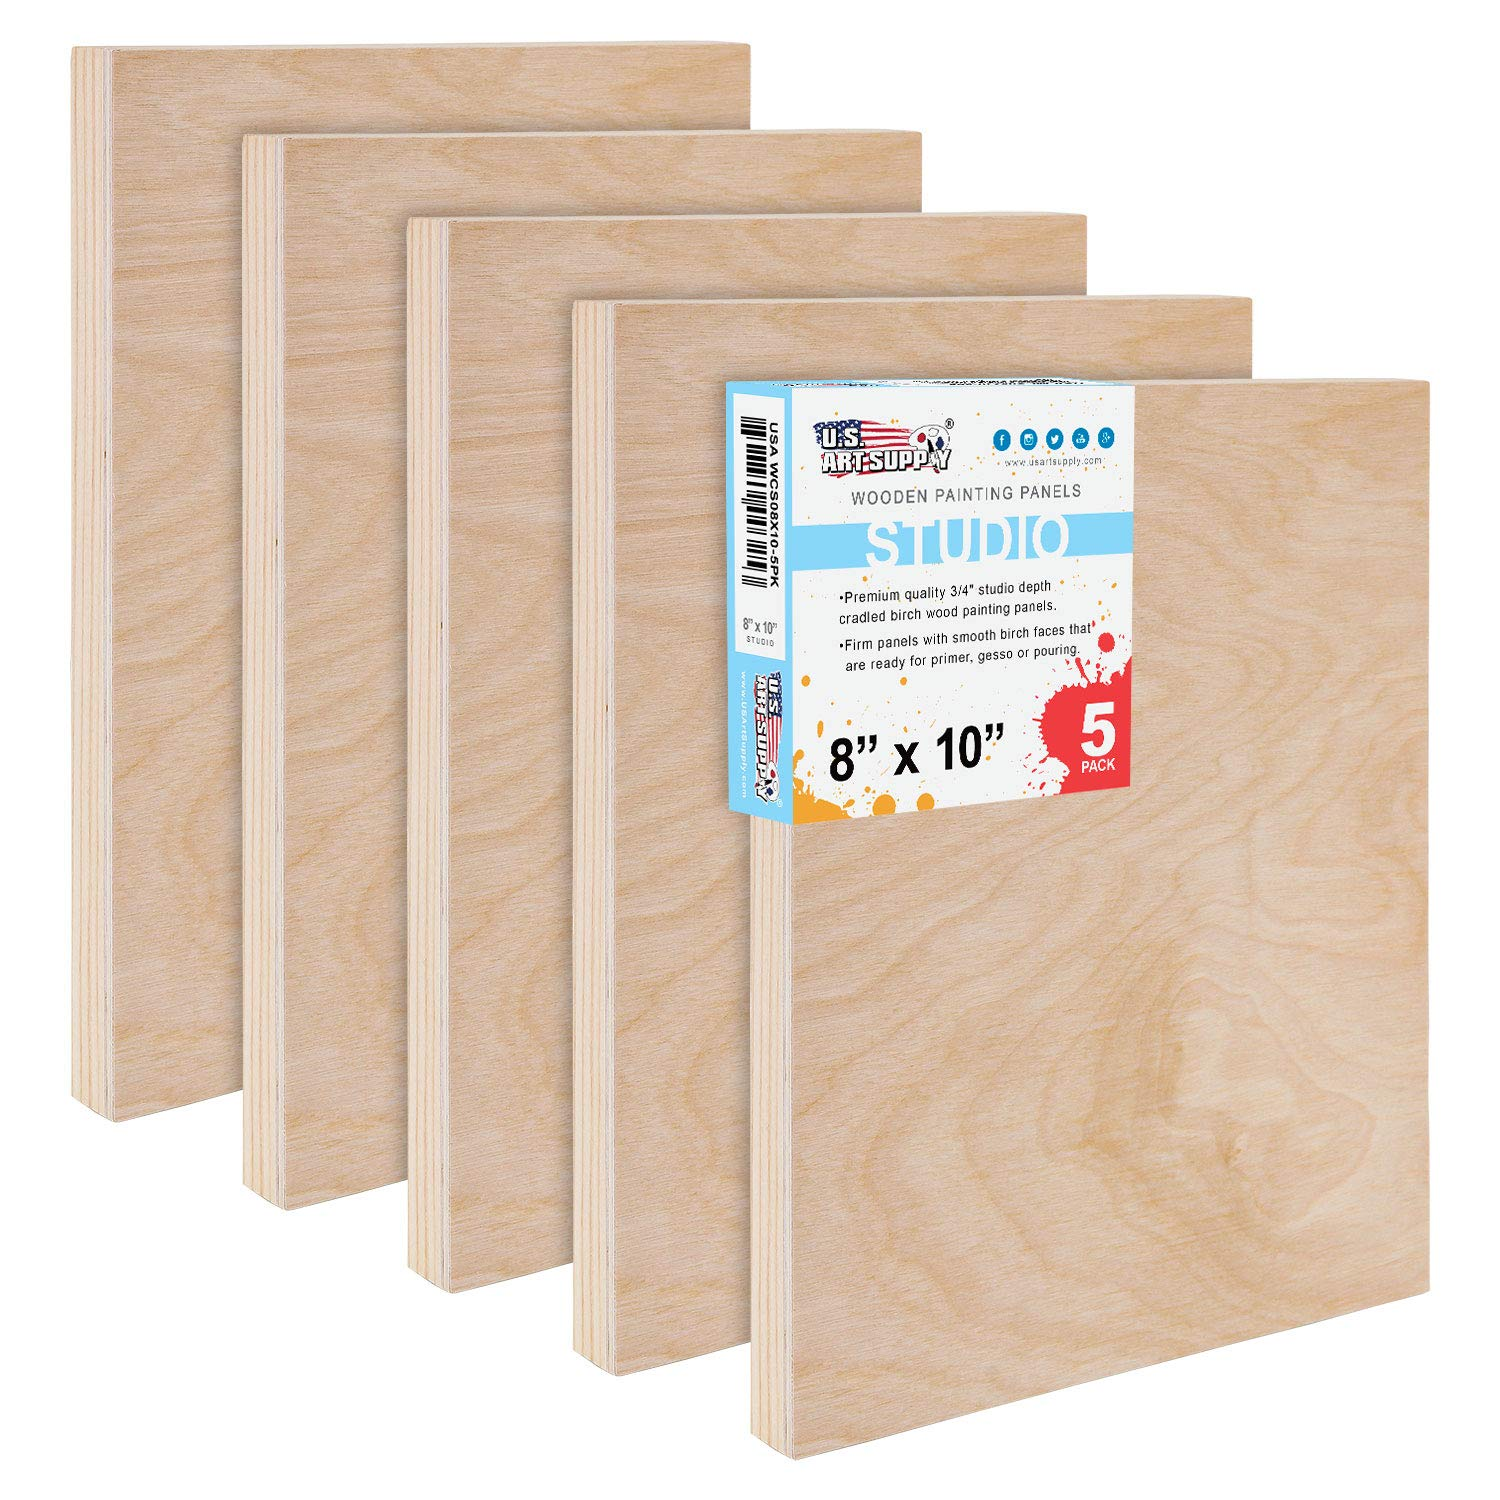 U.S. Art Supply 8'' x 10'' Birch Wood Paint Pouring Panel Boards, Studio 3/4'' Deep Cradle (Pack of 5) - Artist Wooden Wall Canvases - Painting Mixed-Media Craft, Acrylic, Oil, Watercolor, Encaustic by US Art Supply